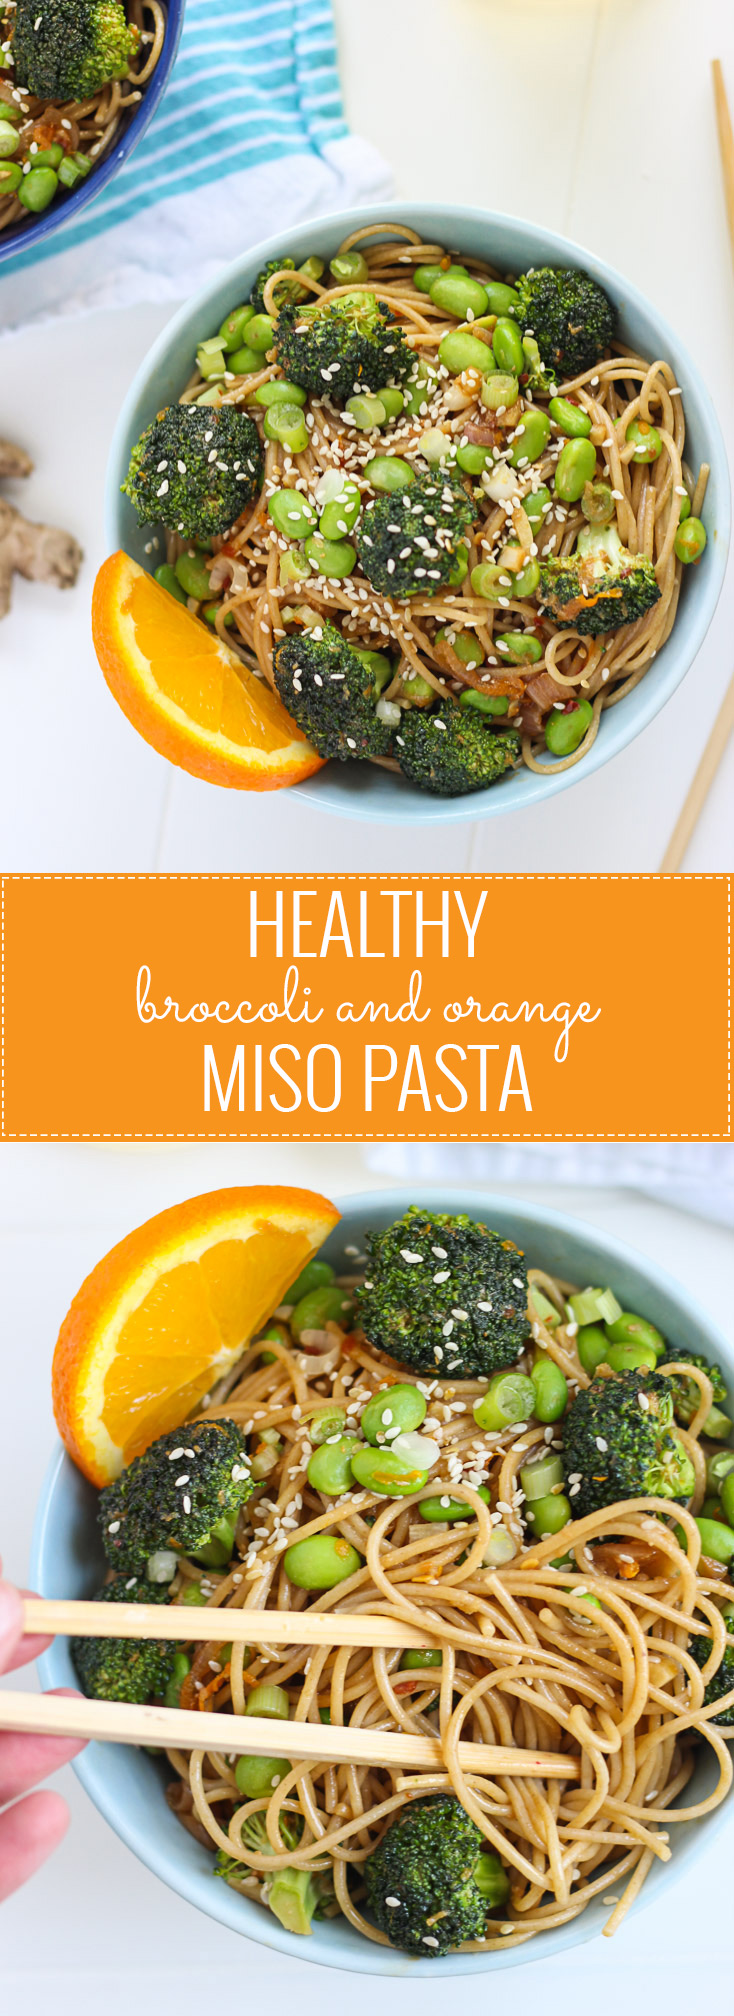 """Healthy Broccoli and Orange Miso Pasta - ready in under 30 minutes and will satisfy your """"take out"""" craving!"""